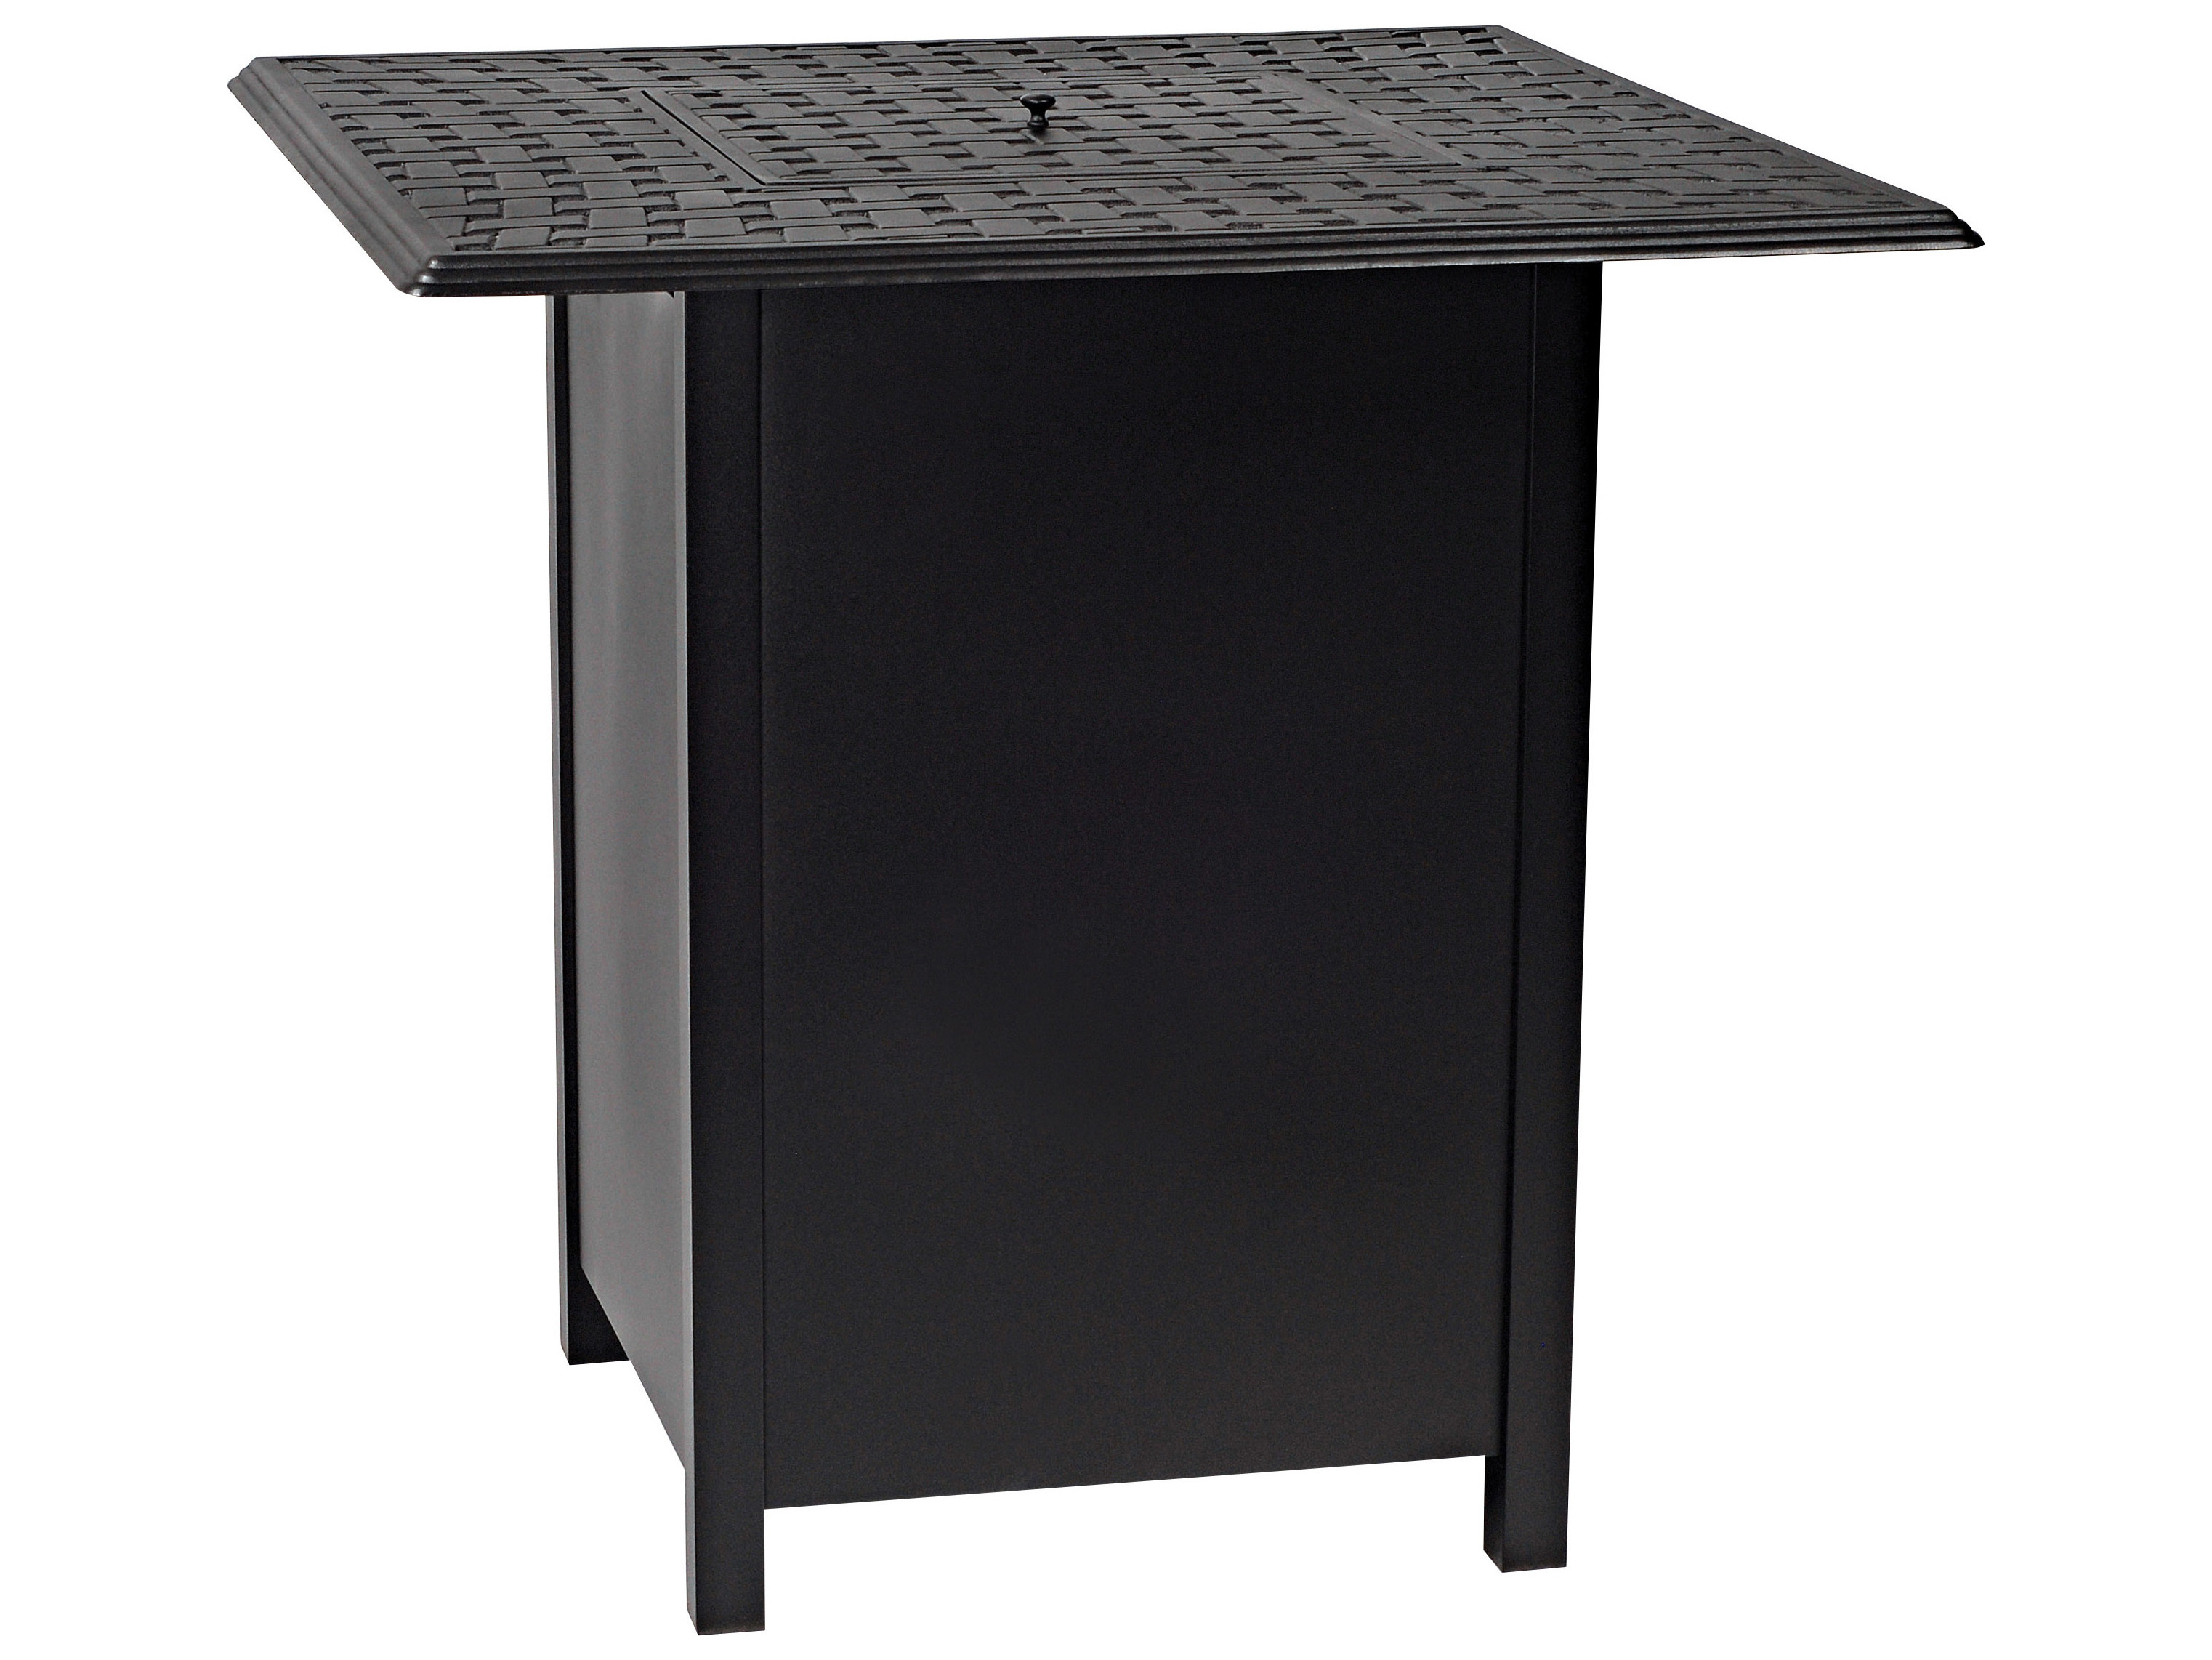 Woodard Aluminum Square Bar Height Fire Table Base with ...